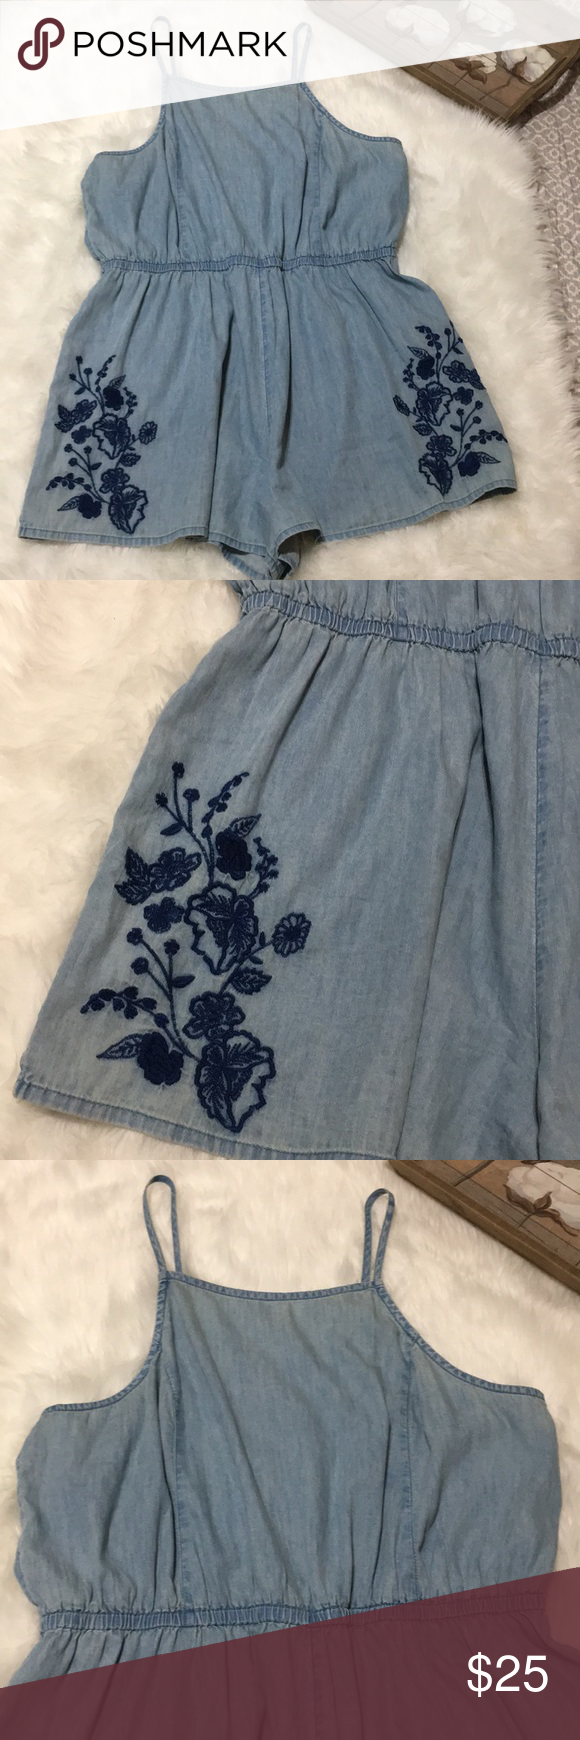 a7d89f806f6 Mossimo Supply Co Embroidered Denim Romper Sz XXL Mossimo supply co denim  jean embroidered romper size XXL in excellent condition. Mossimo Supply Co.  Pants ...